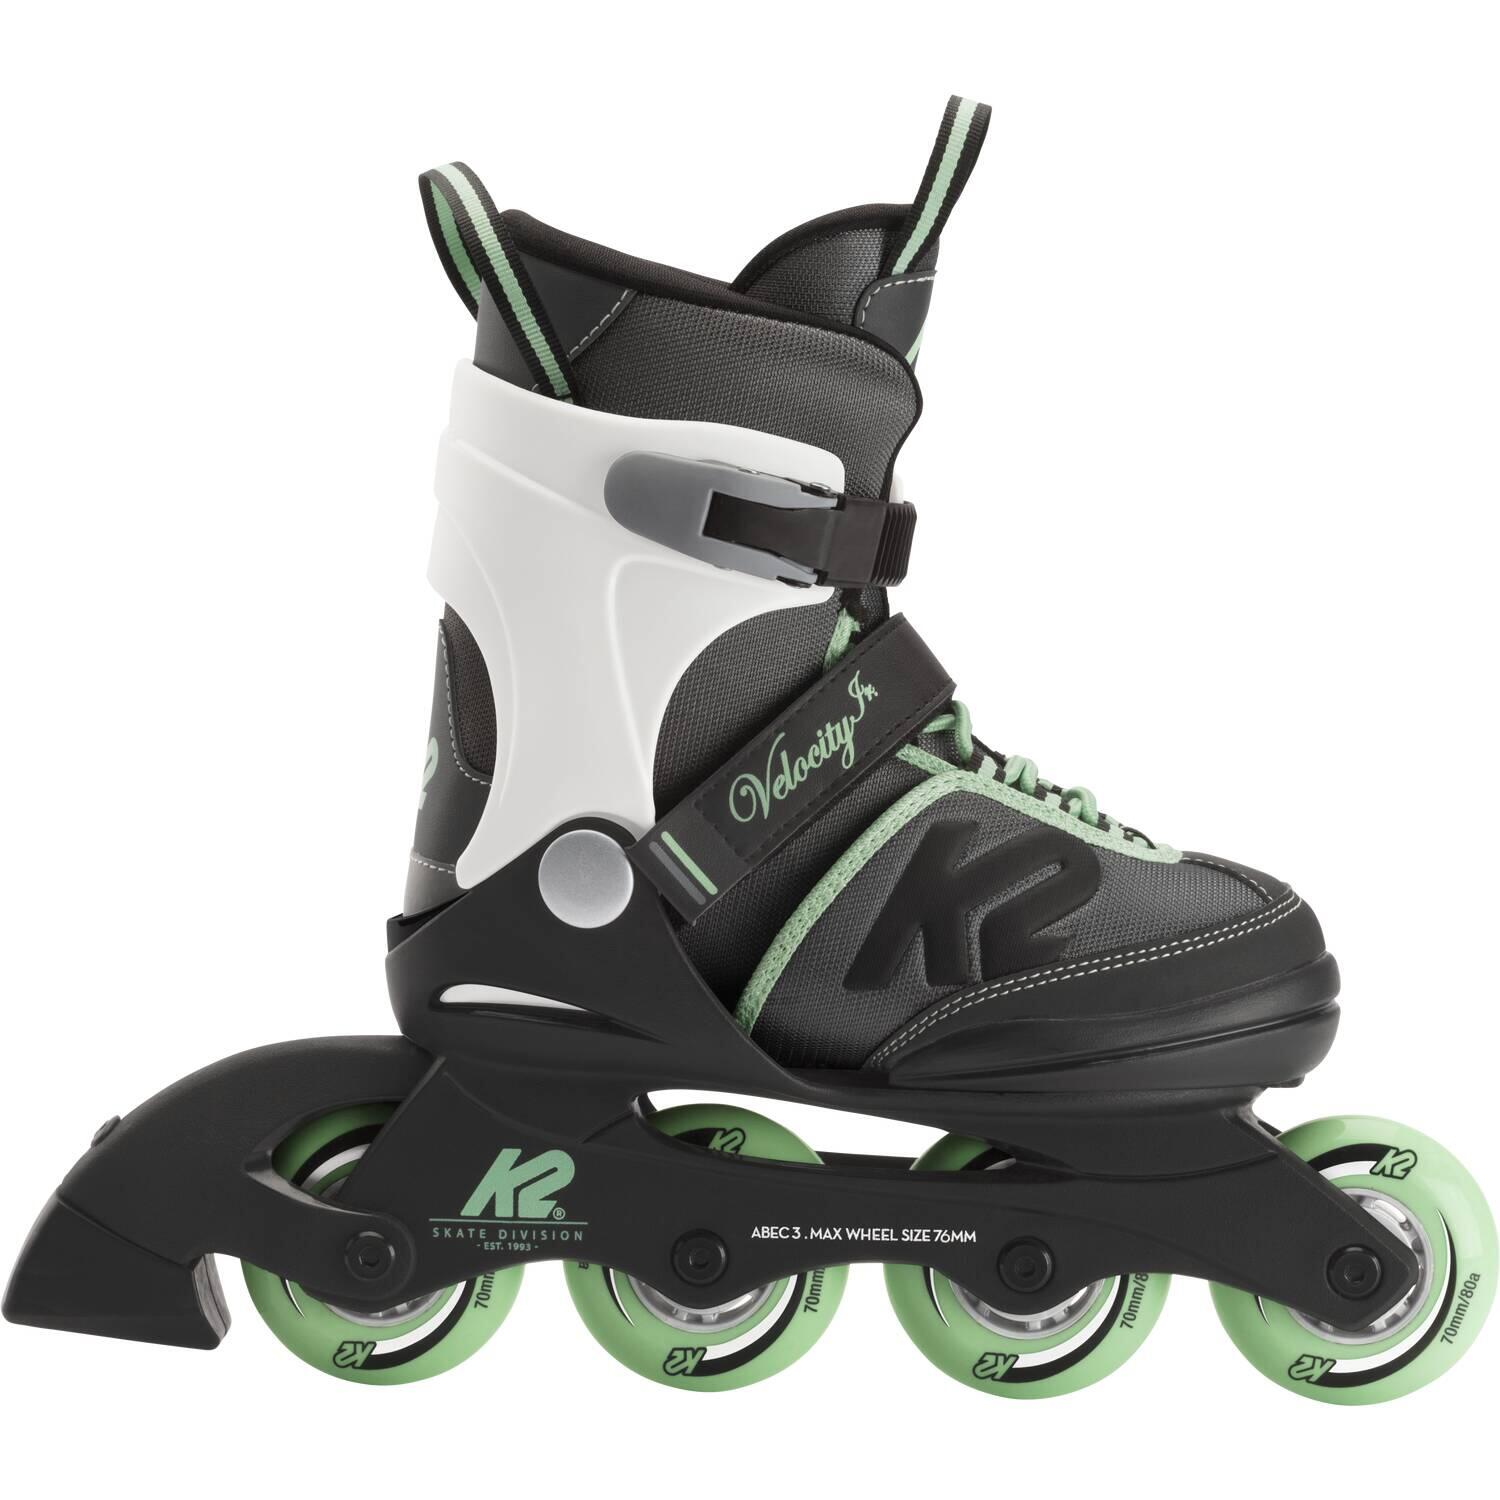 Inliner - K2 Velocity Junior Girl Inliner (Größe 35.0 40.0, black grey green) - Onlineshop